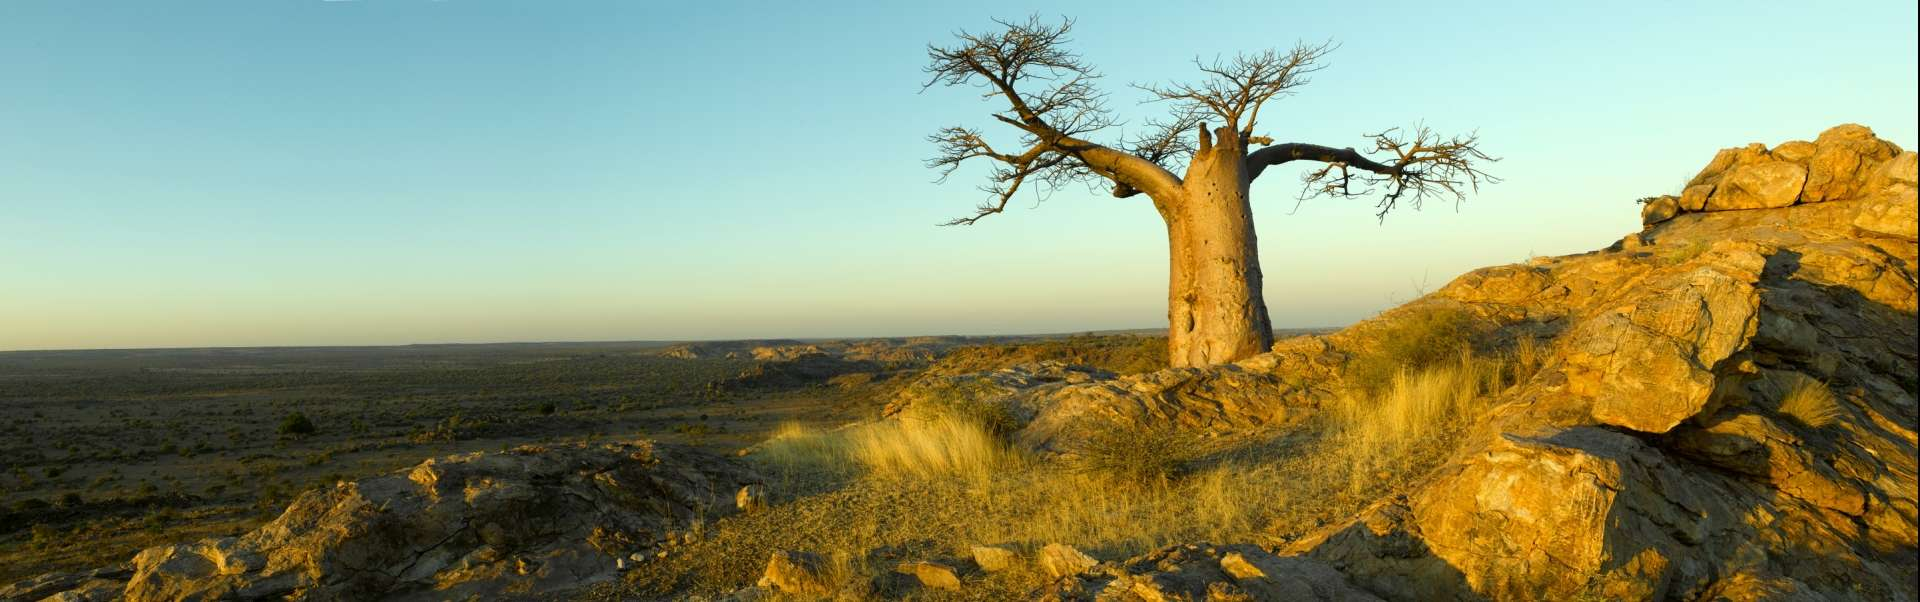 Historic baobab trees can be see throughout Botswana